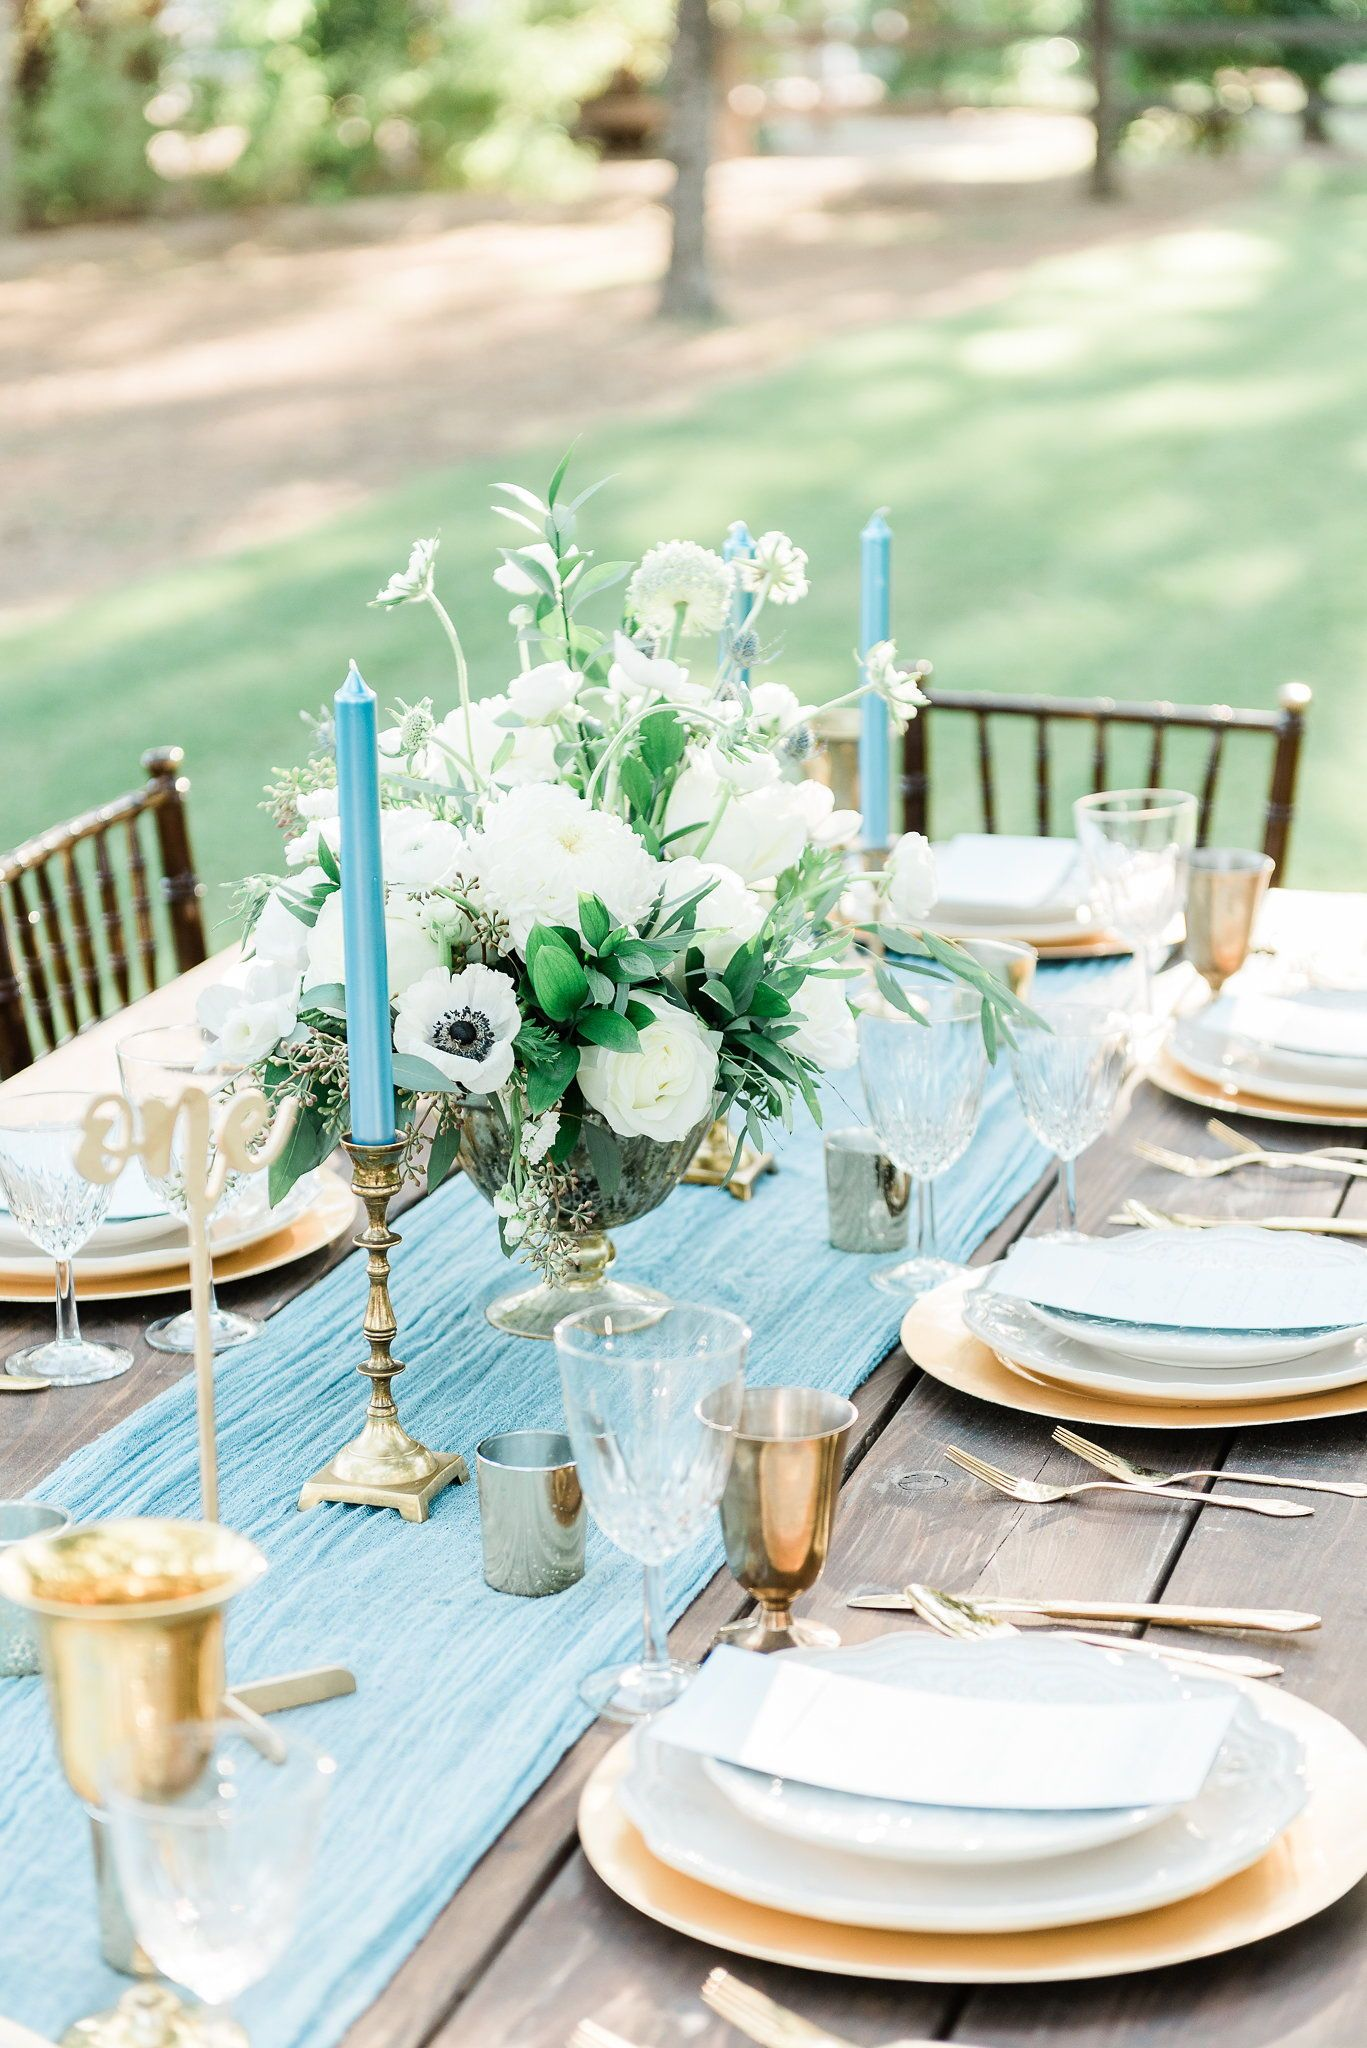 Reception Table Centerpiece Featuring Greenery And Anemone